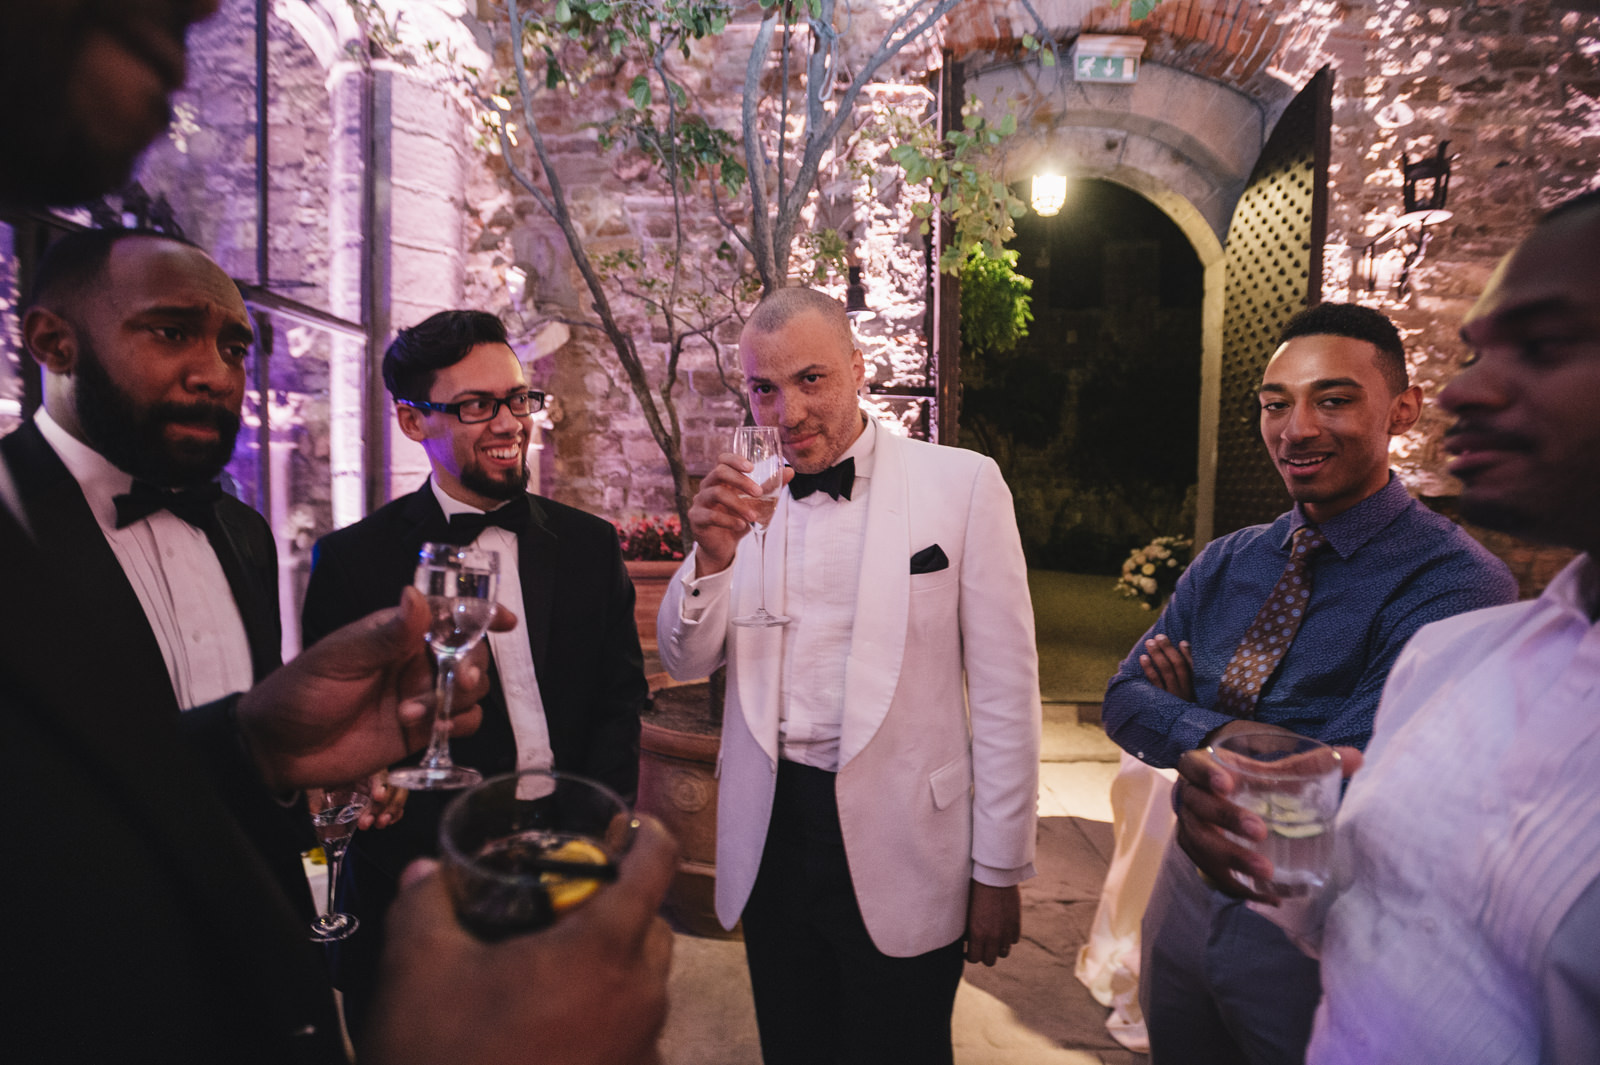 the groom with other guests during the after dinner party